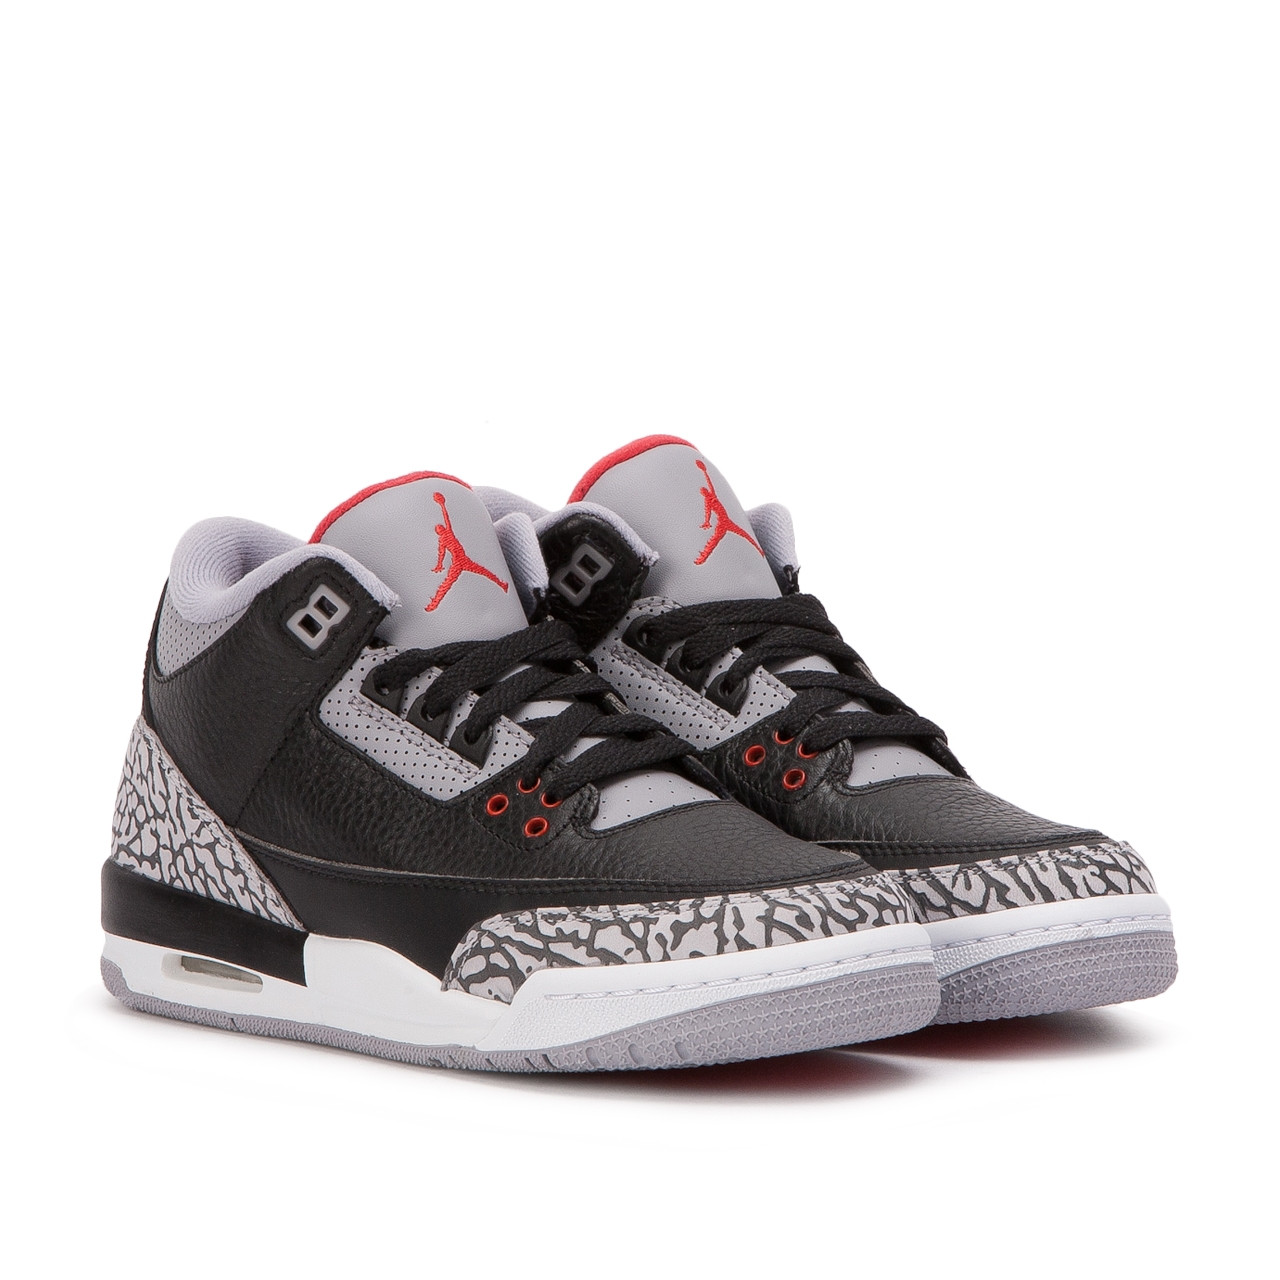 Air Jordan 3 Retro OG  Black Cement   Black   Grey   Red  854262 001 Air Jordan 3 Retro OG  Black Cement   Black   Grey